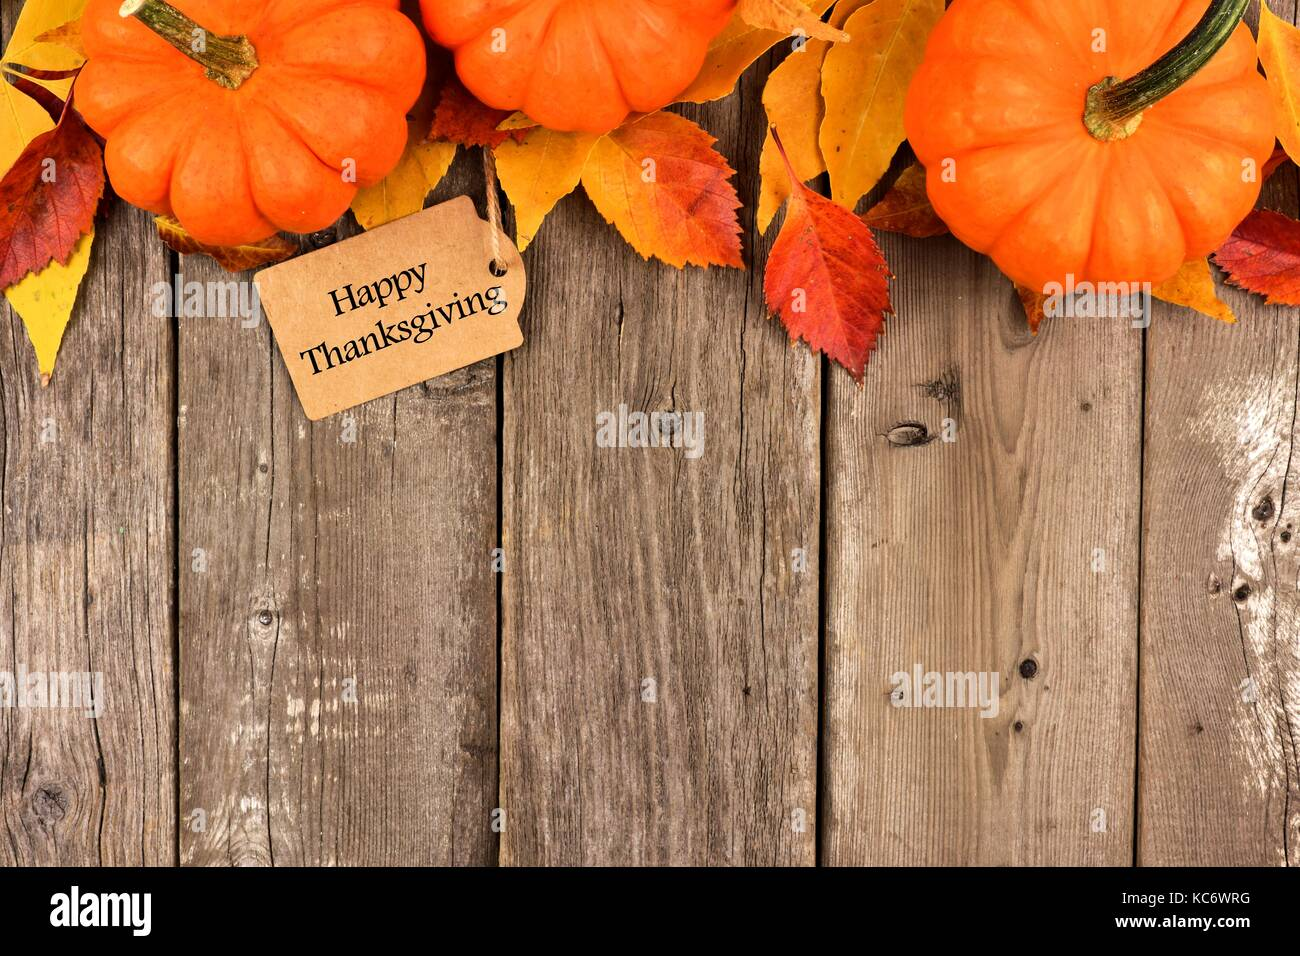 Happy Thanksgiving Gift Tag With Top Border Of Pumpkins And Autumn Leaves Over A Rustic Wood Background